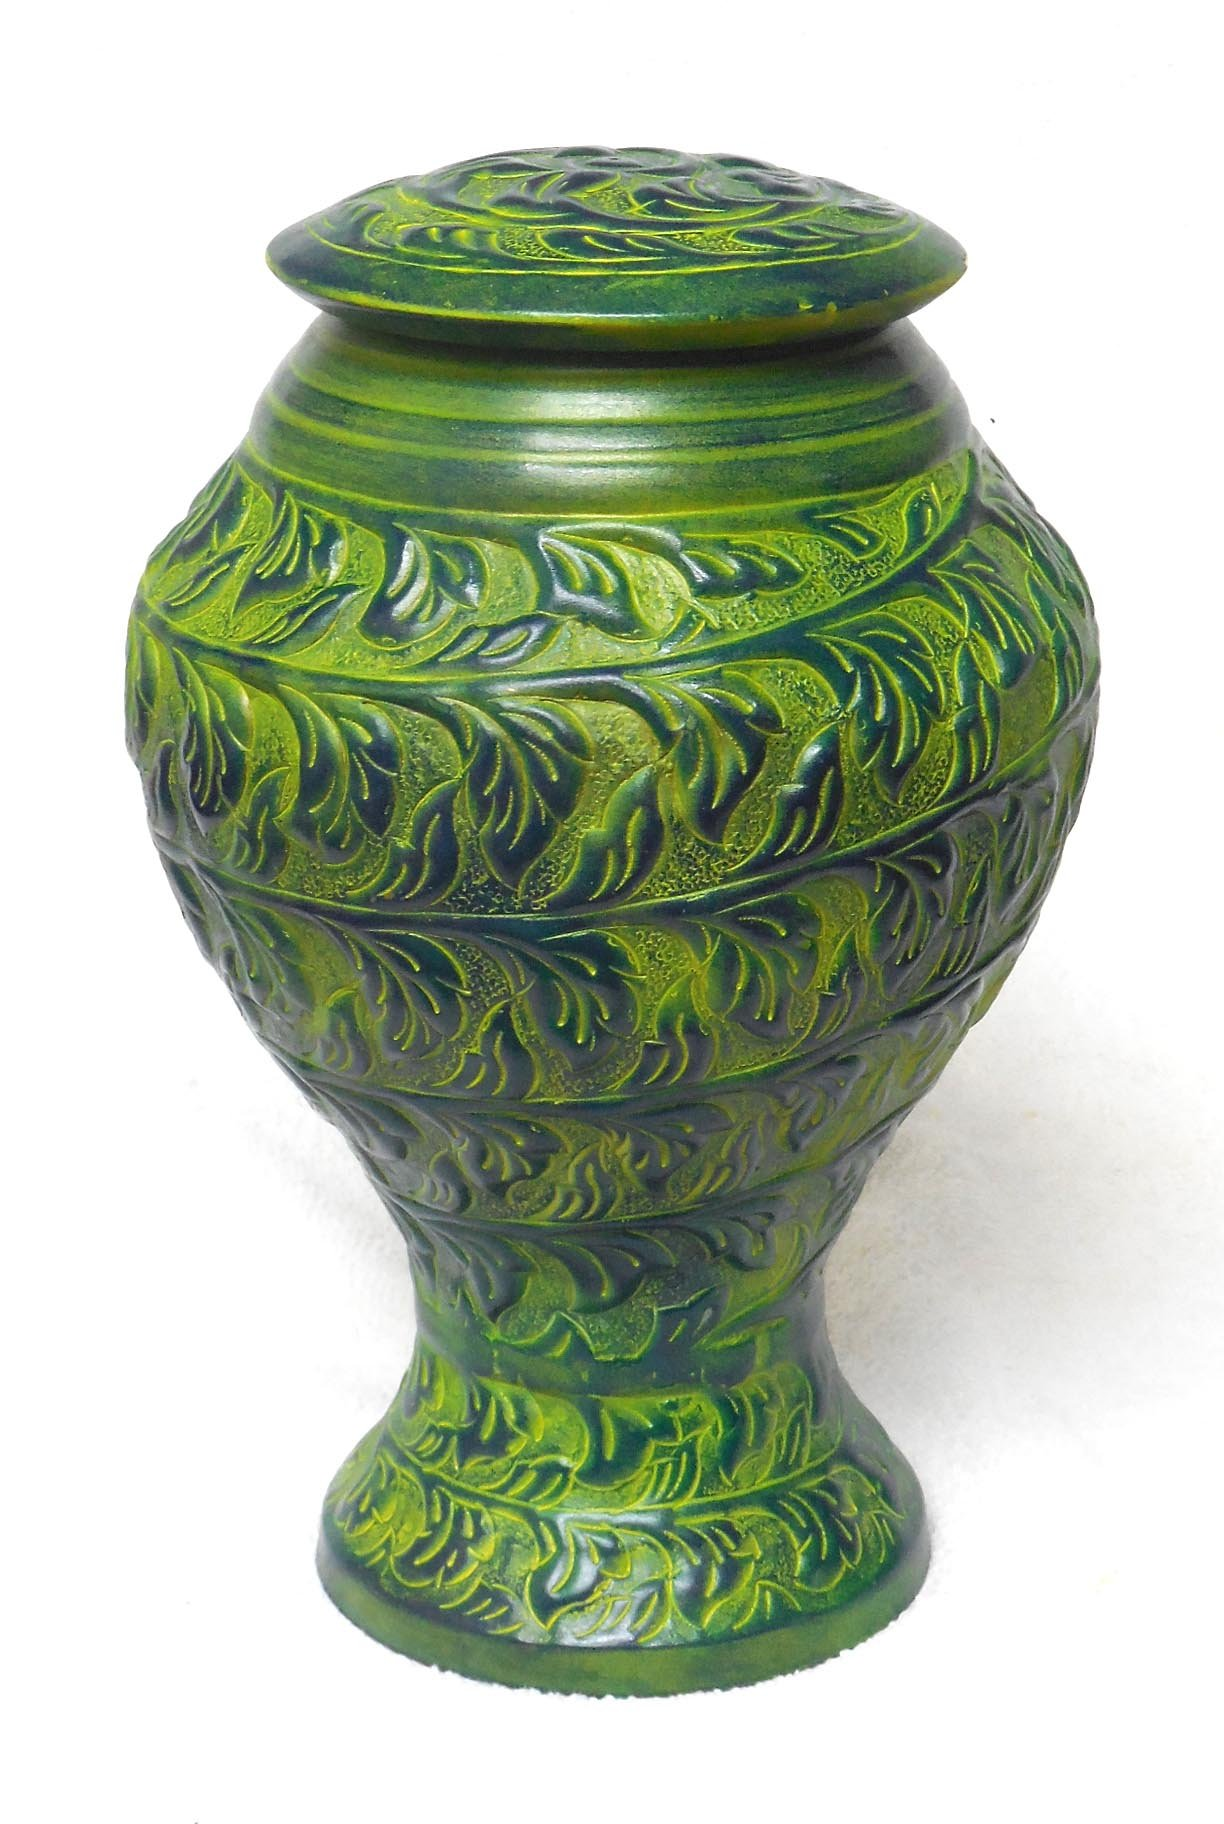 Green Funeral Urn by Liliane Memorials - Cremation Urn for Human Ashes - Hand Made in metal - Suitable for Cemetery Burial or Niche - Large Size fits remains of Adults up to 200 lbs - Vertiz Model